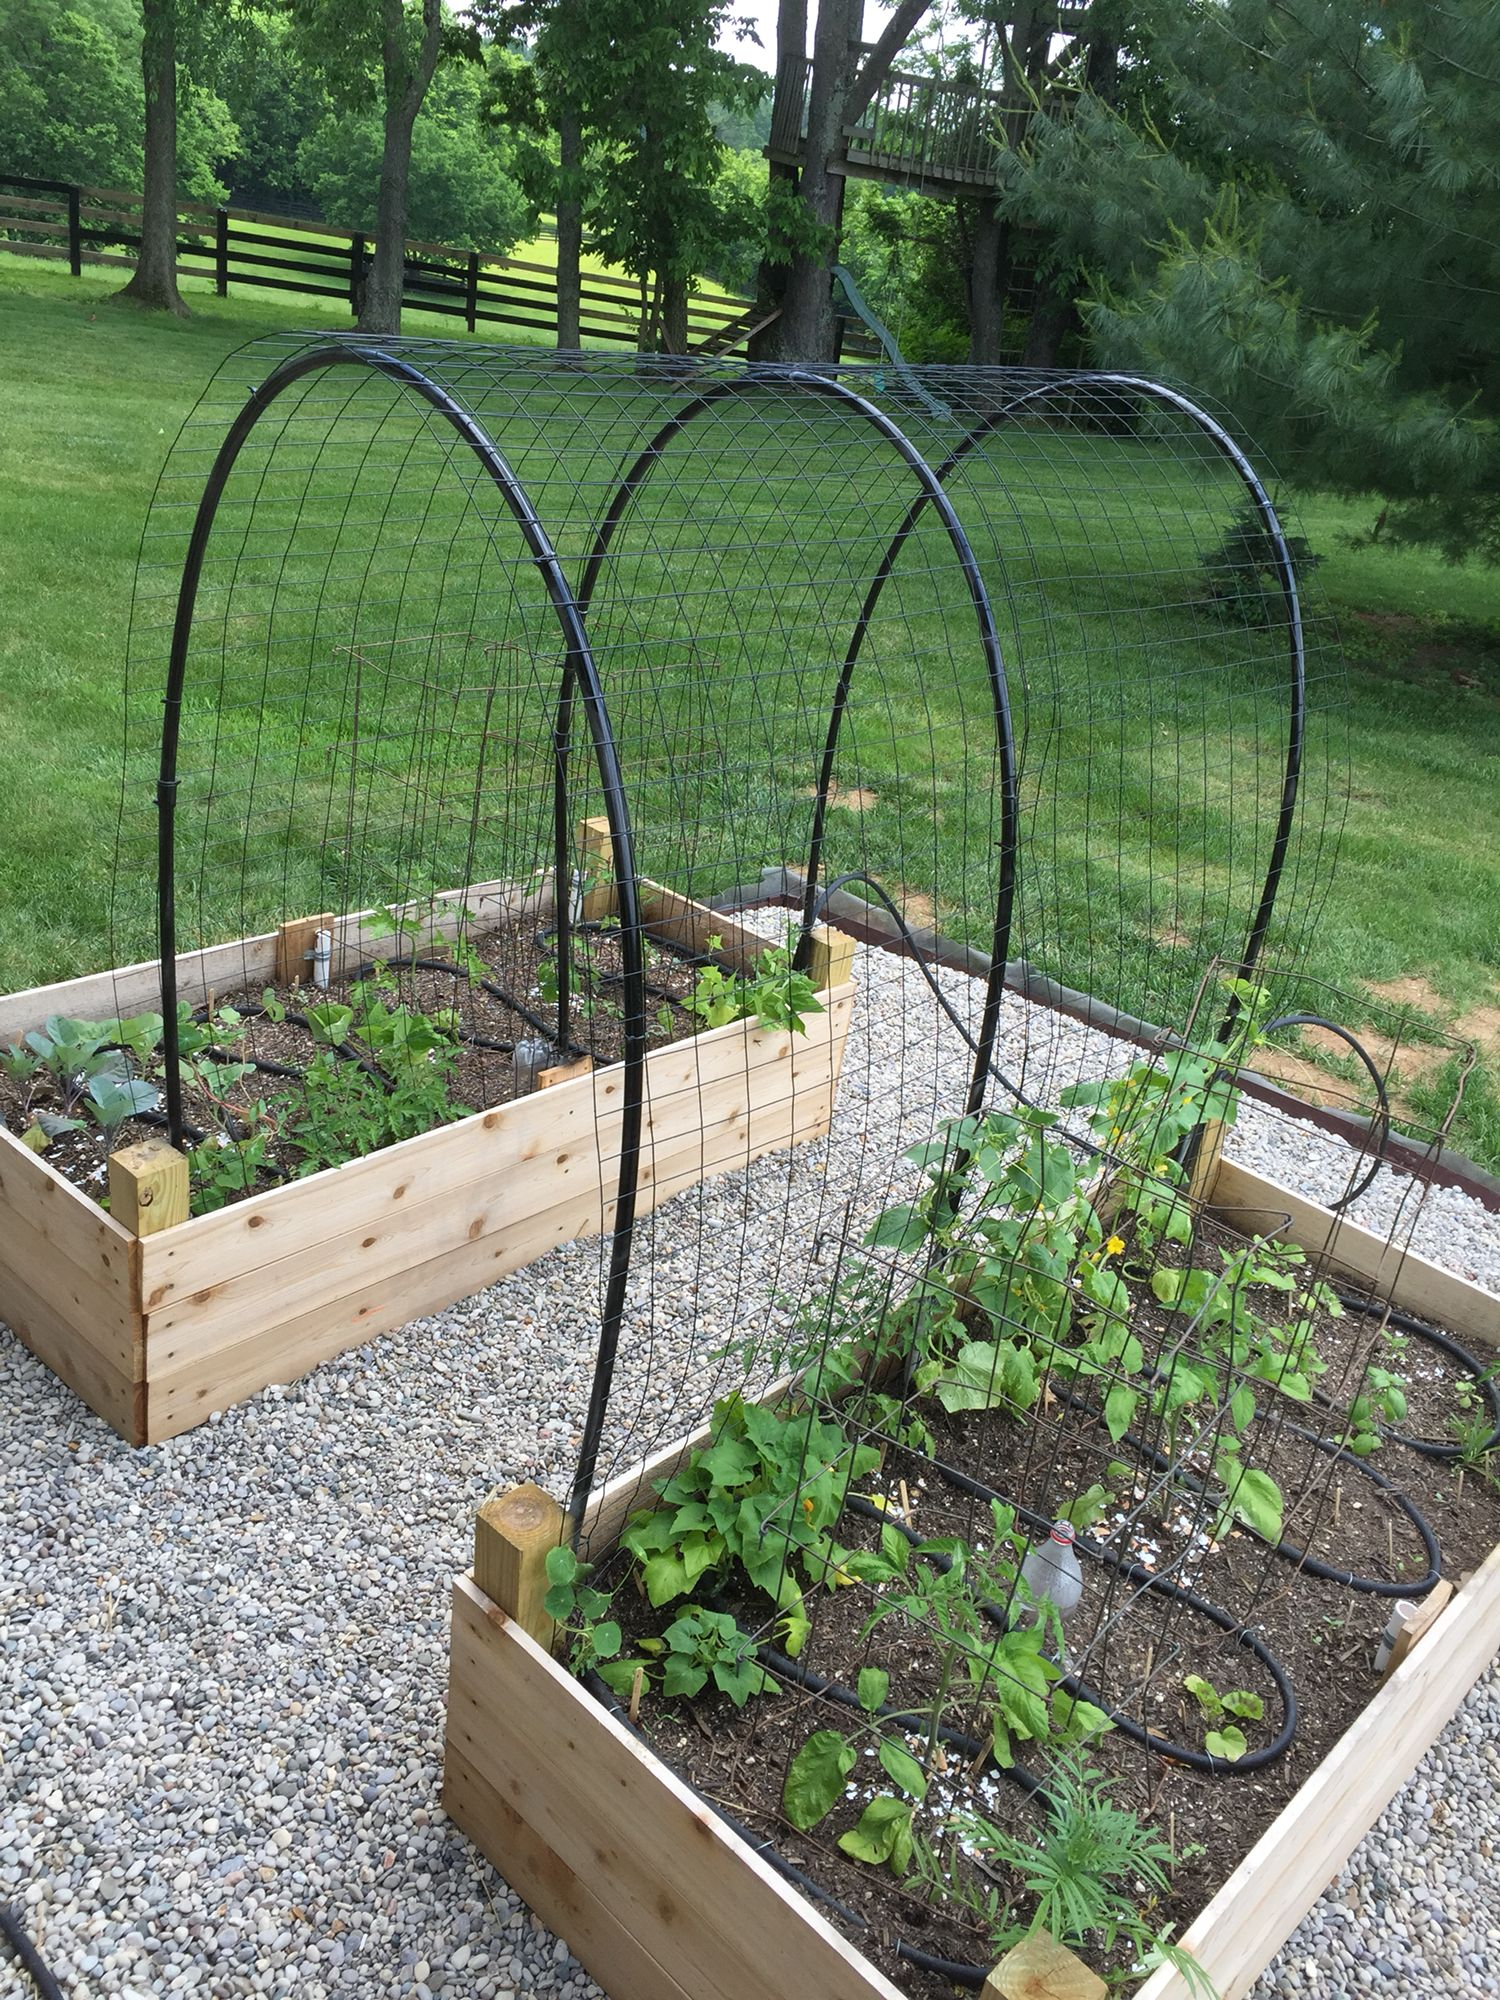 Raised cedar bed planters with pvc pipe trellis and soaker hose on a raised cedar bed planters with pvc pipe trellis and soaker hose on a timer ahhhh my dream garden at last solutioingenieria Image collections